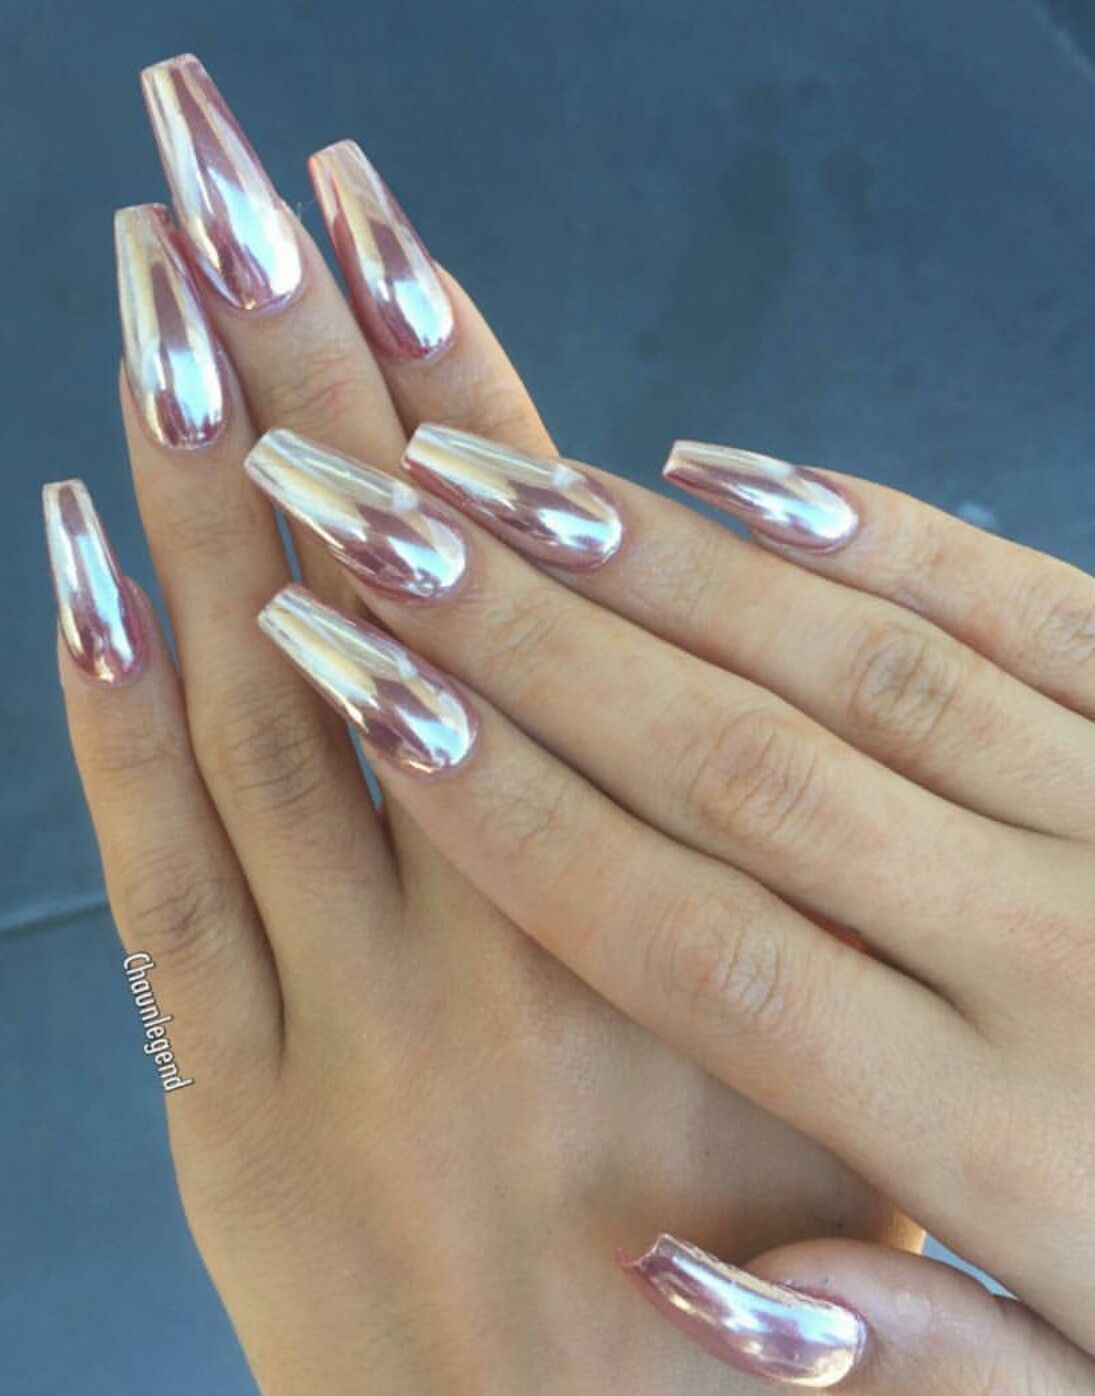 pics Chrome Nails: How To DIY The Metallic Manicure Trend